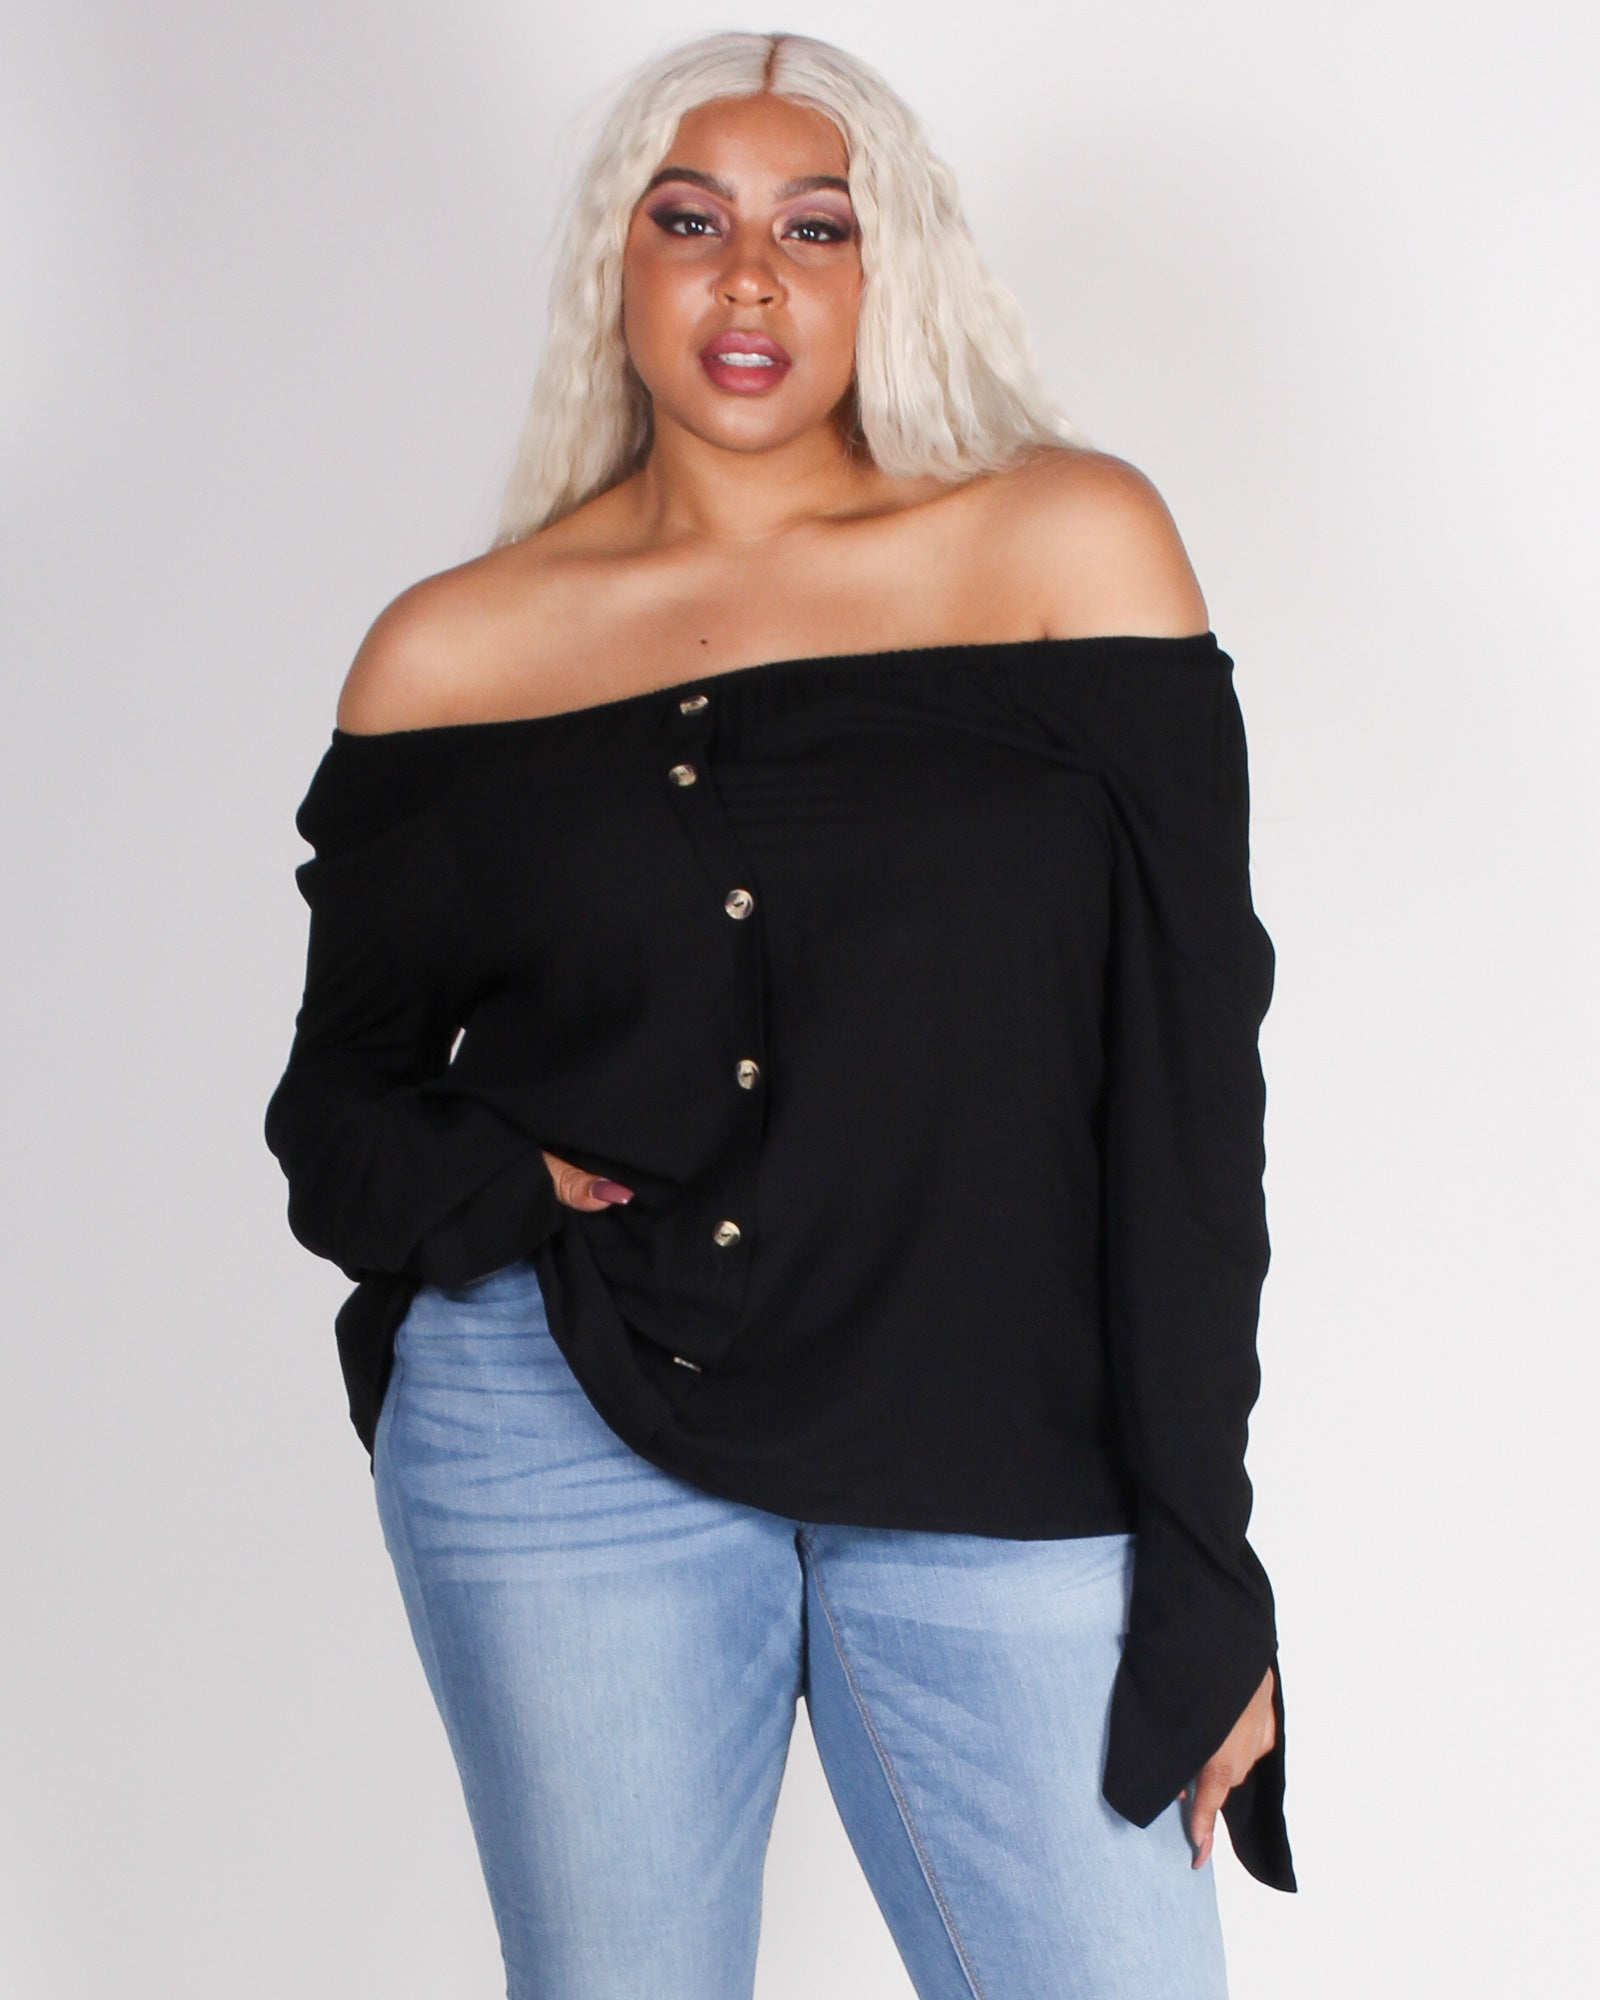 Fashion Q Shop Q Where I'm Meant to Be Off the Shoulder Plus Blouse (Black) 71689XL